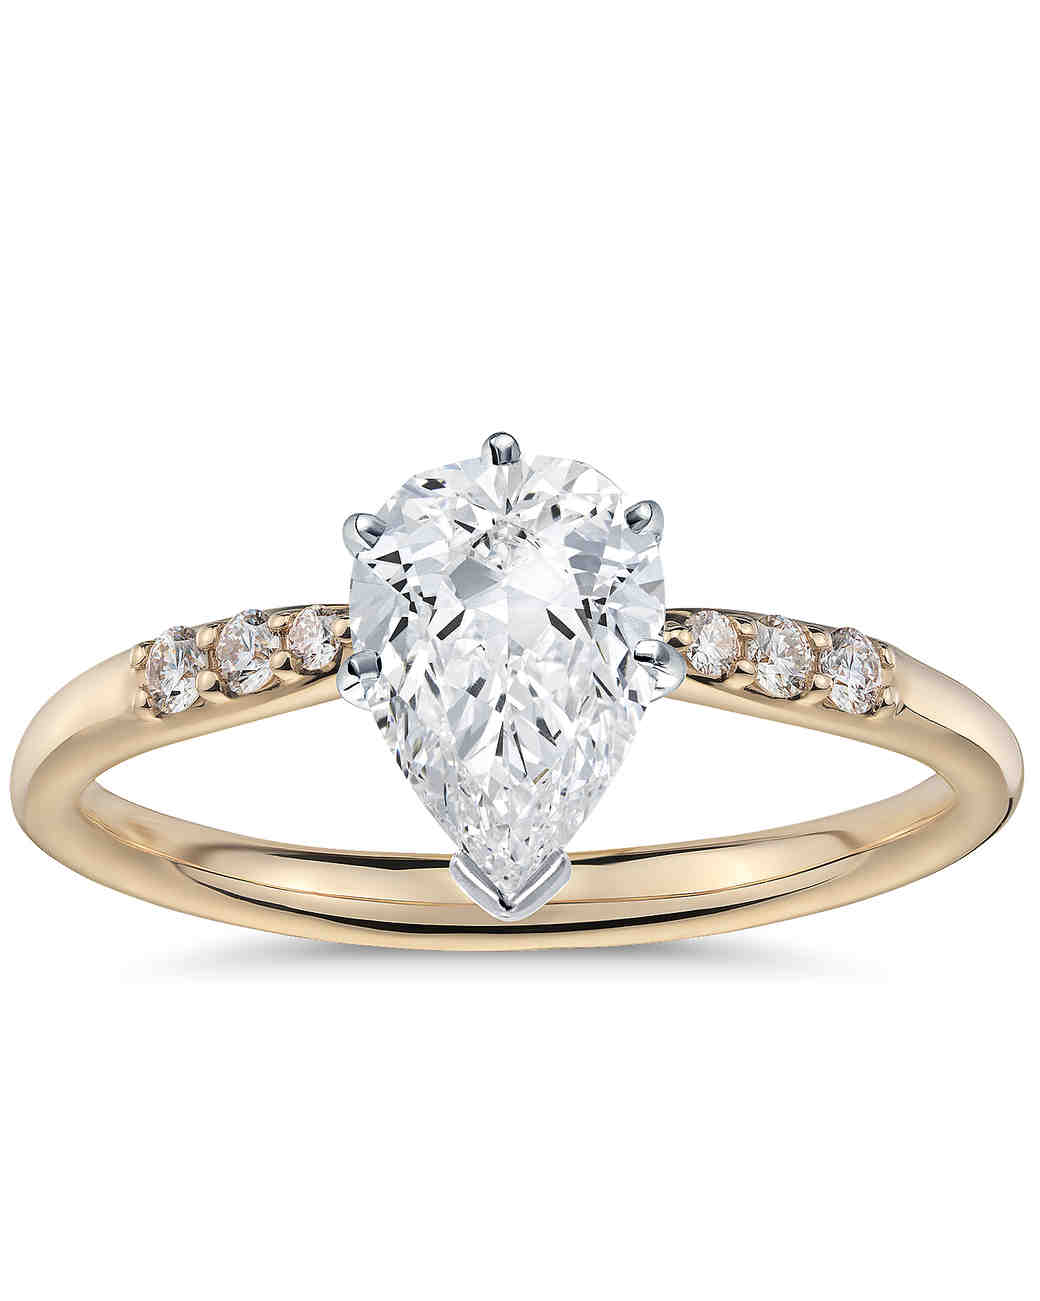 ring engagement j fresh will be lovely simple gallery style wedding bands that vintage always rings classic in